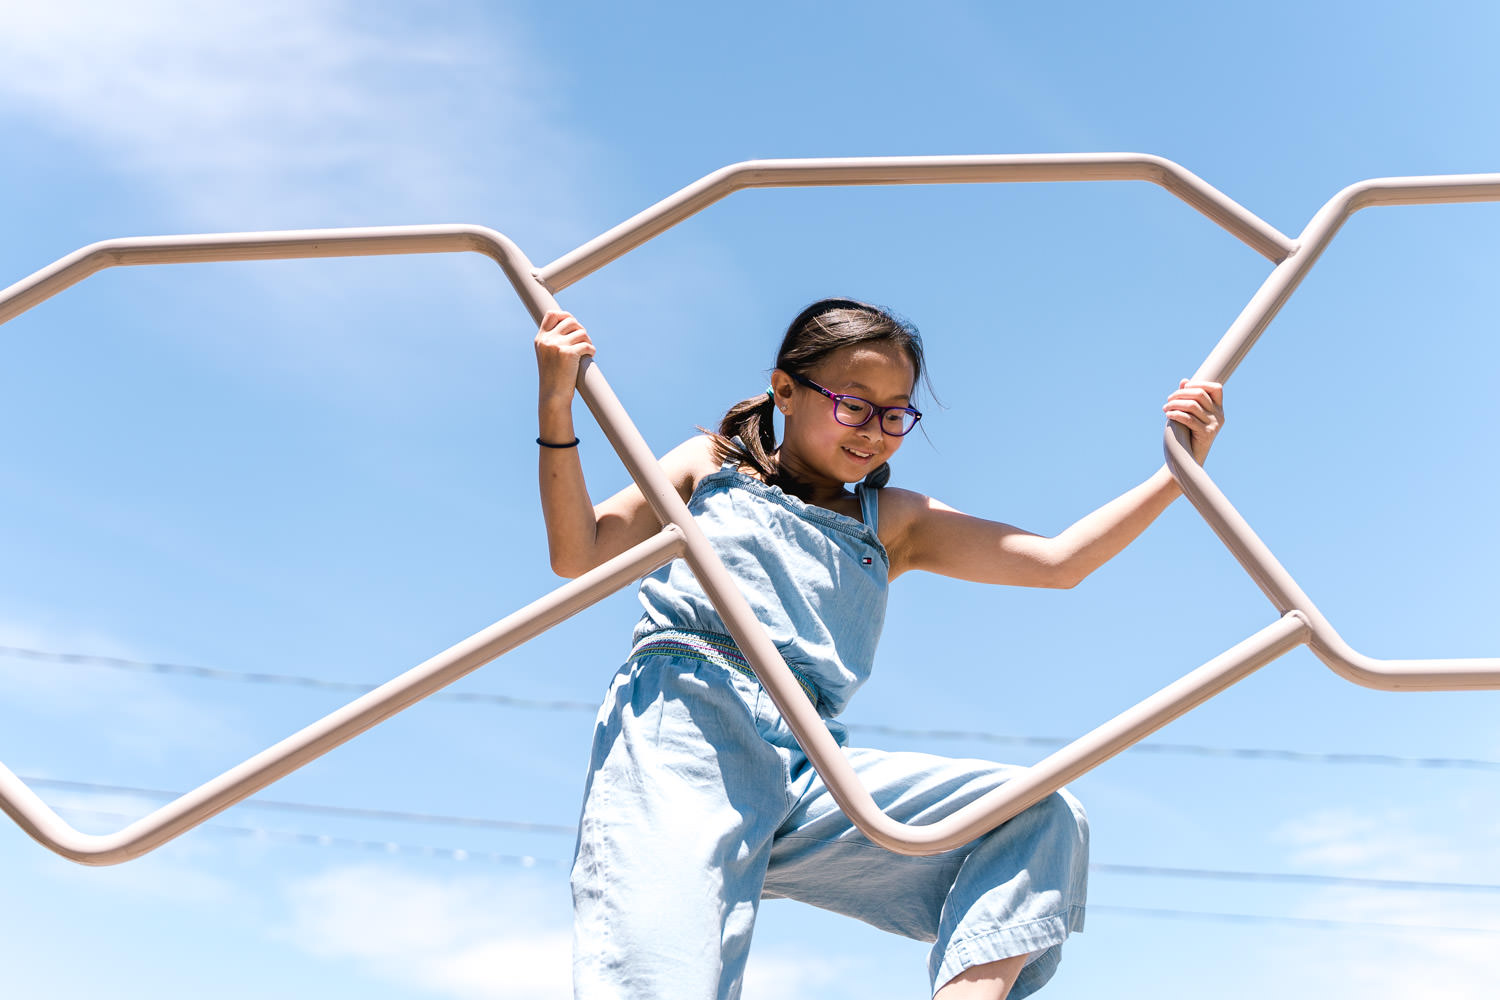 A young girl climbs a playground structure.